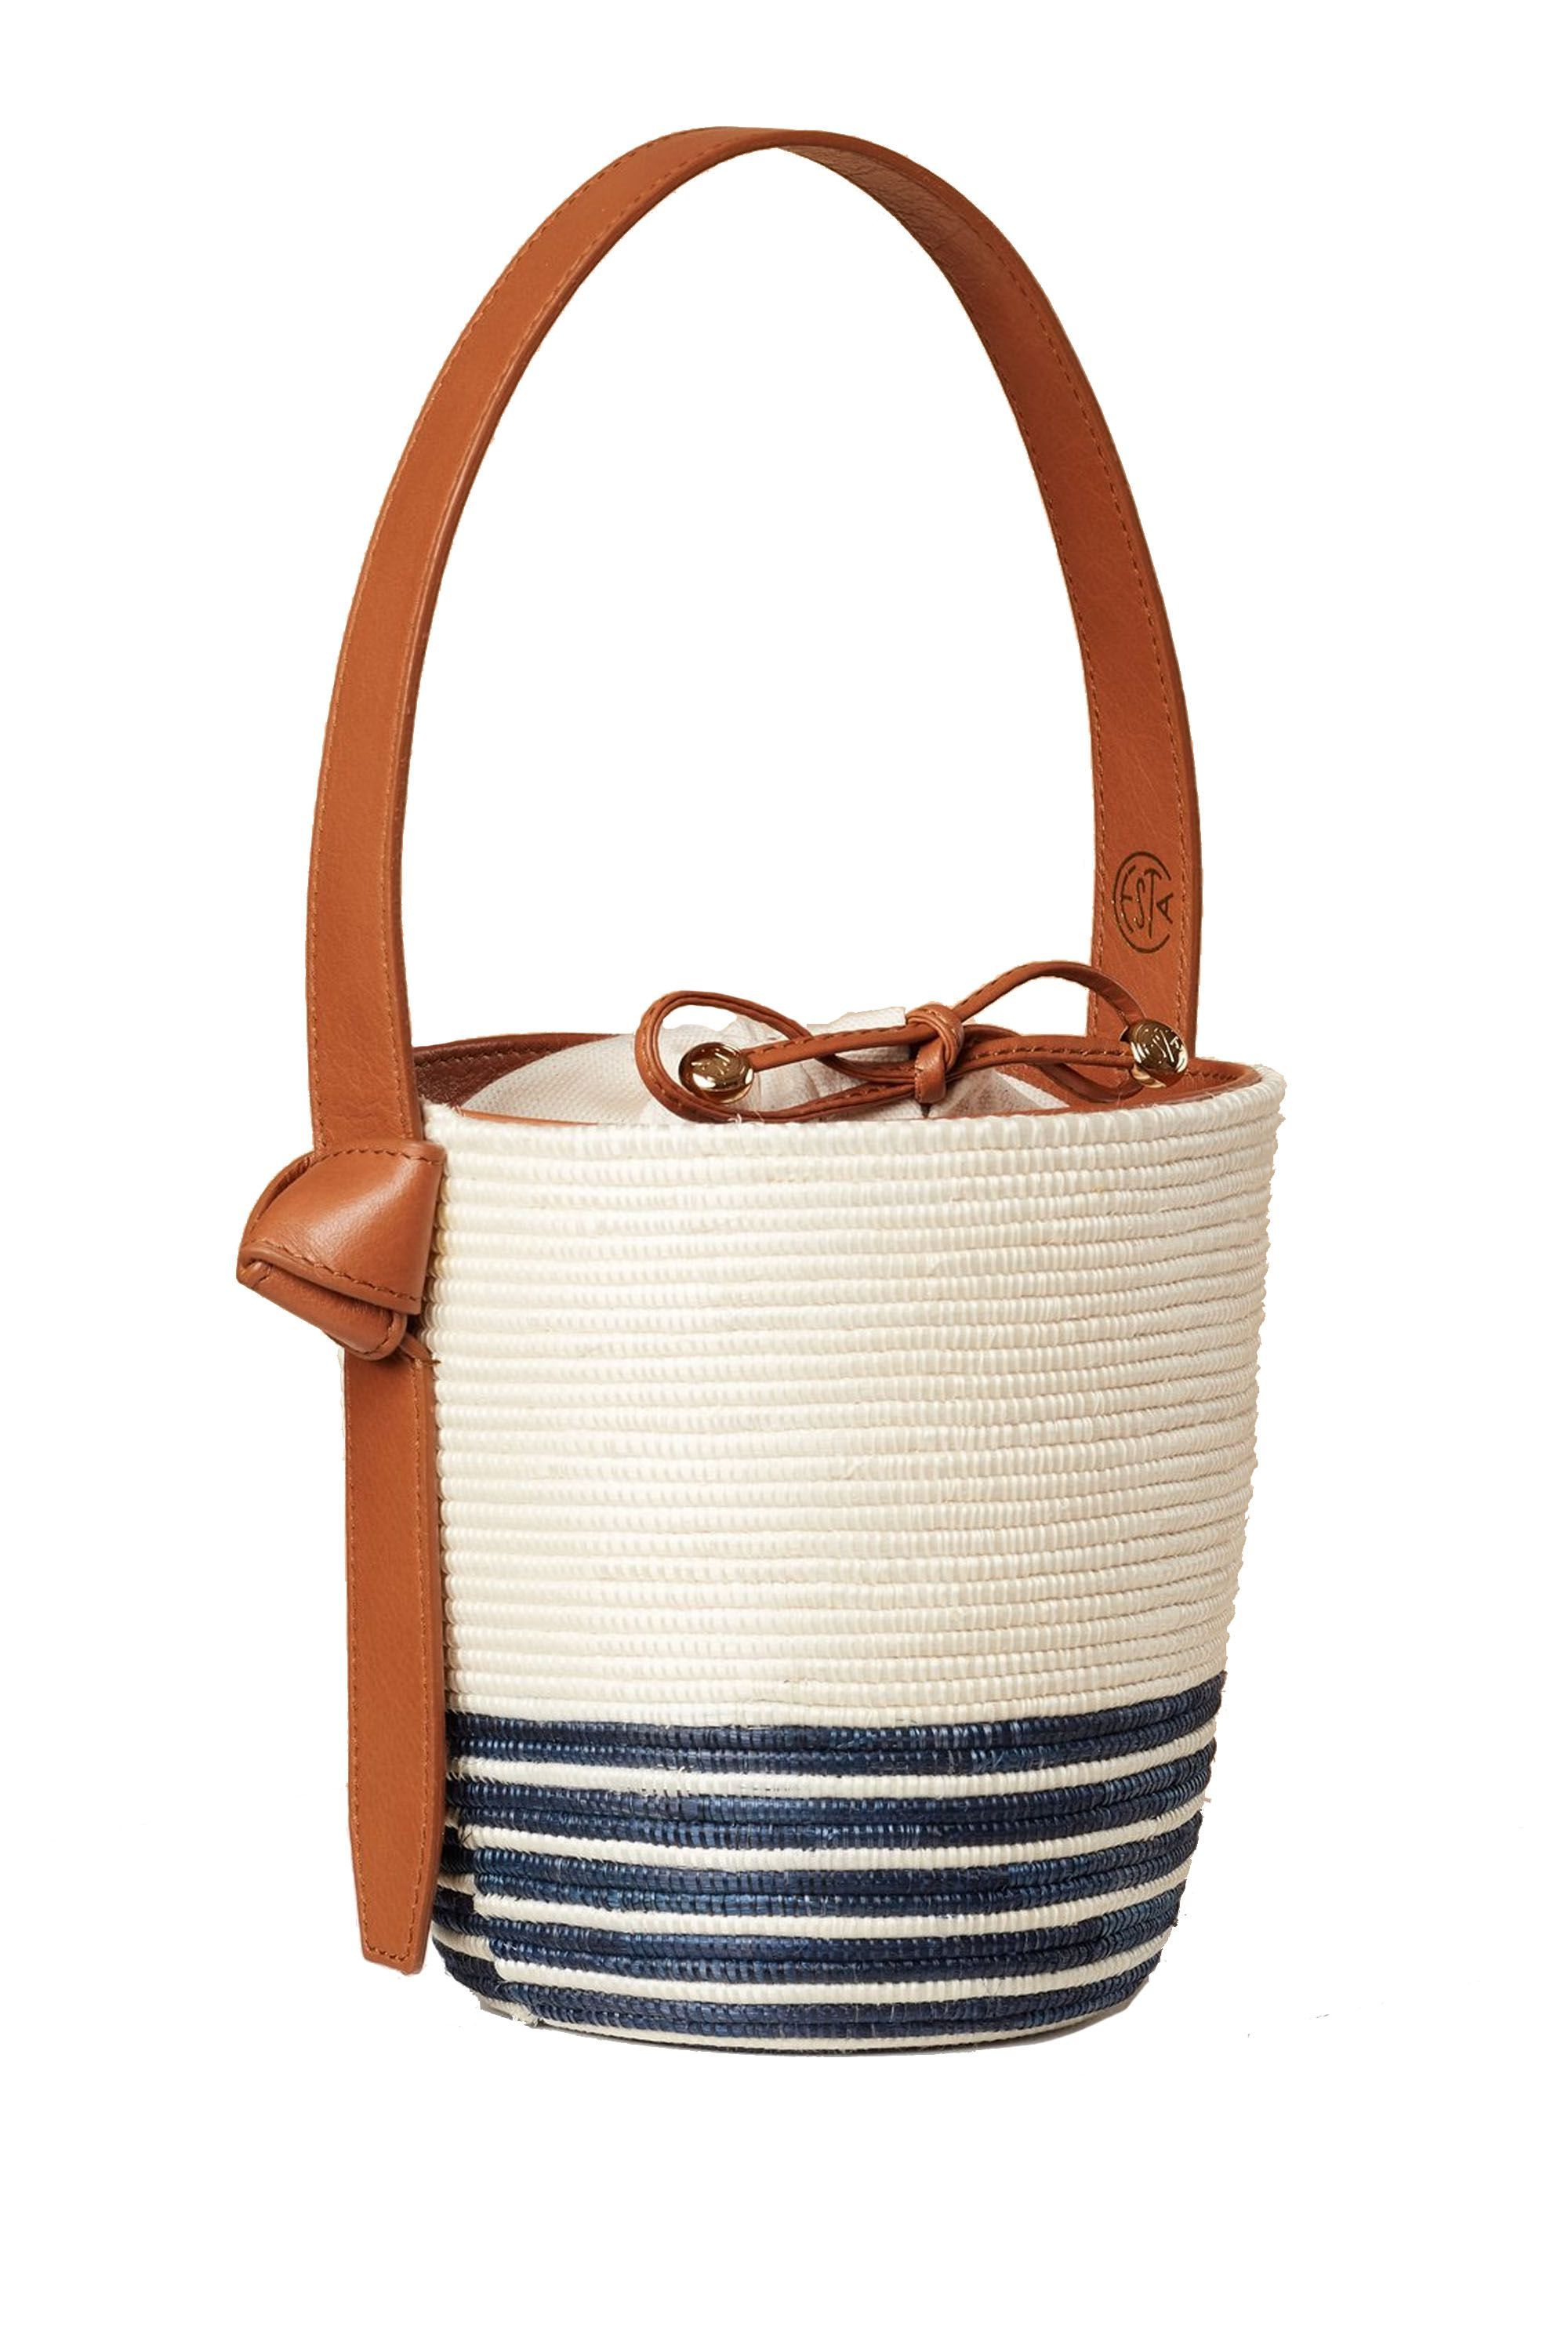 Cute Straw Beach Bags Are Our Current Summer Obsession